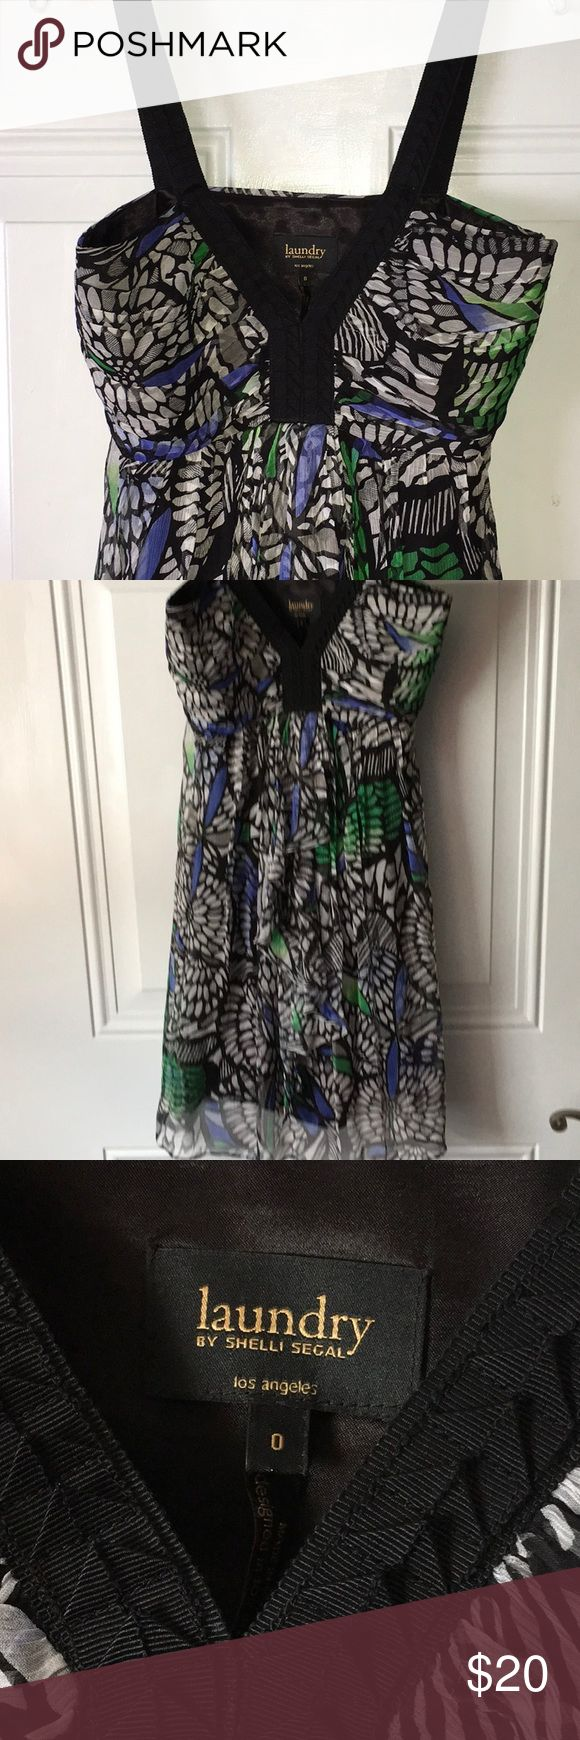 Laundry Shelli Segal Los Angeles Lined Dress Strap dress with side zip. Fully lined. Beautiful for warm weather parties, graduations, weddings and more. Laundry By Shelli Segal Dresses